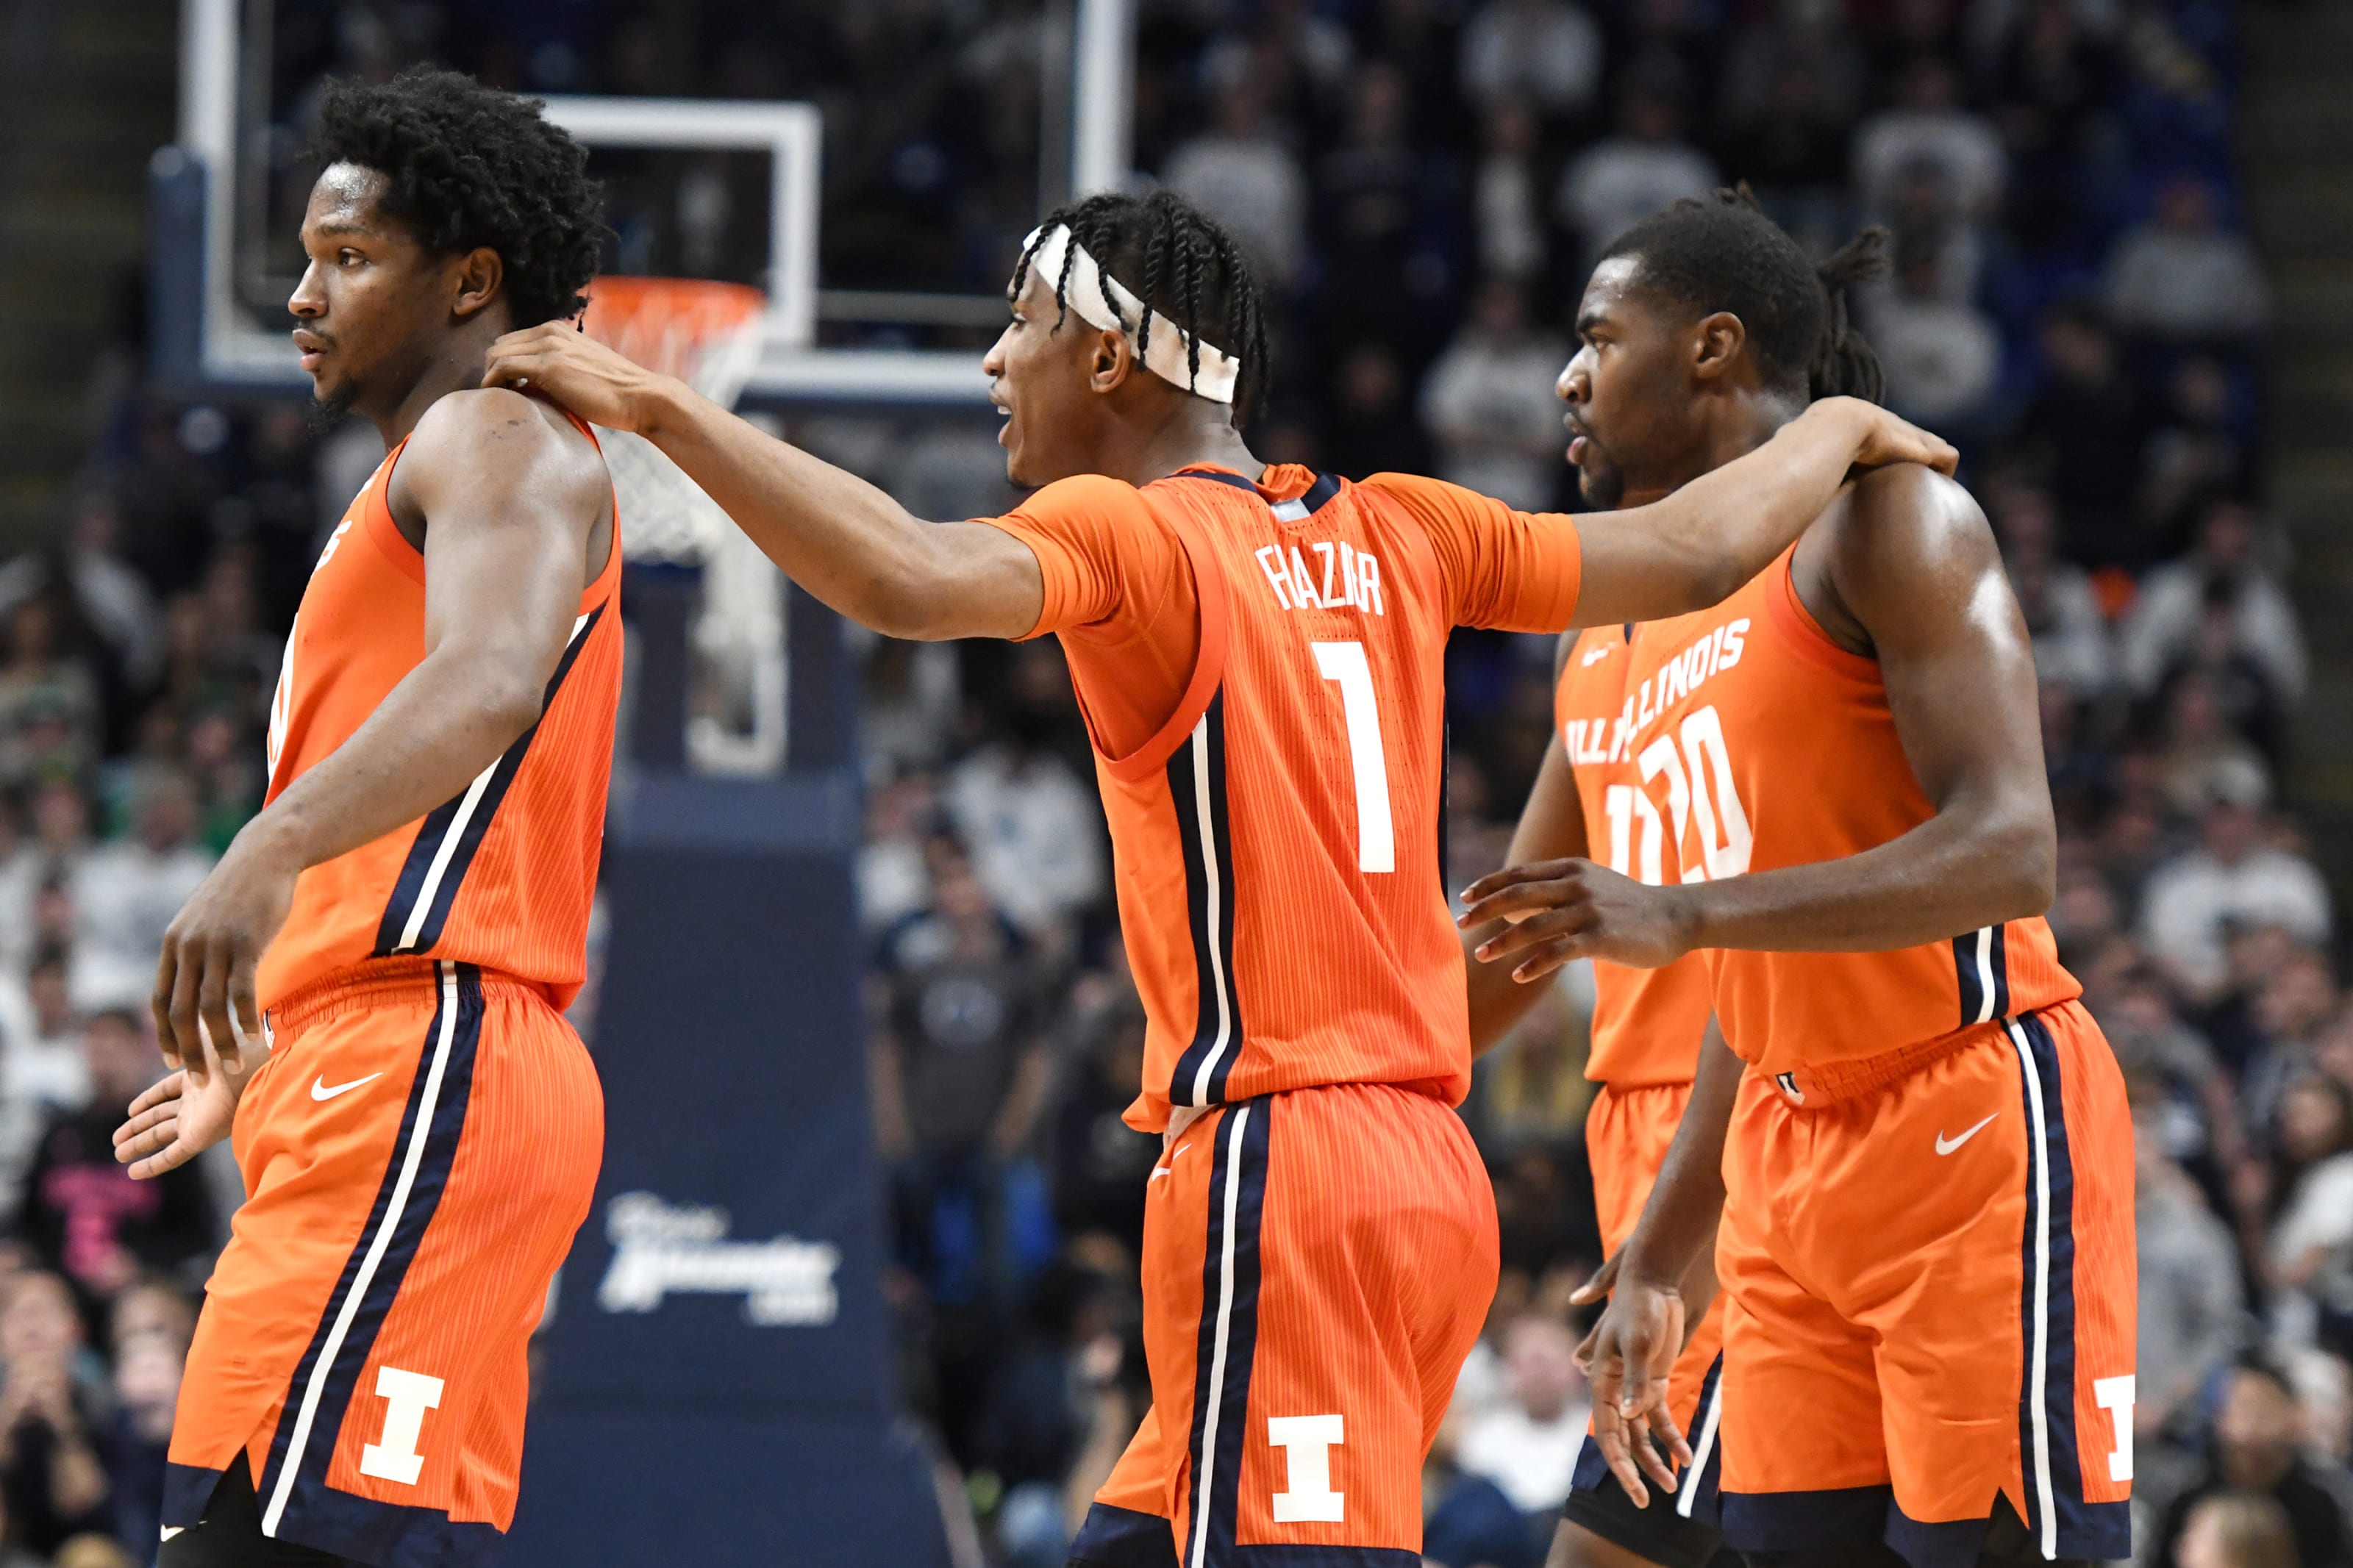 Illini players gather after a play at Penn State